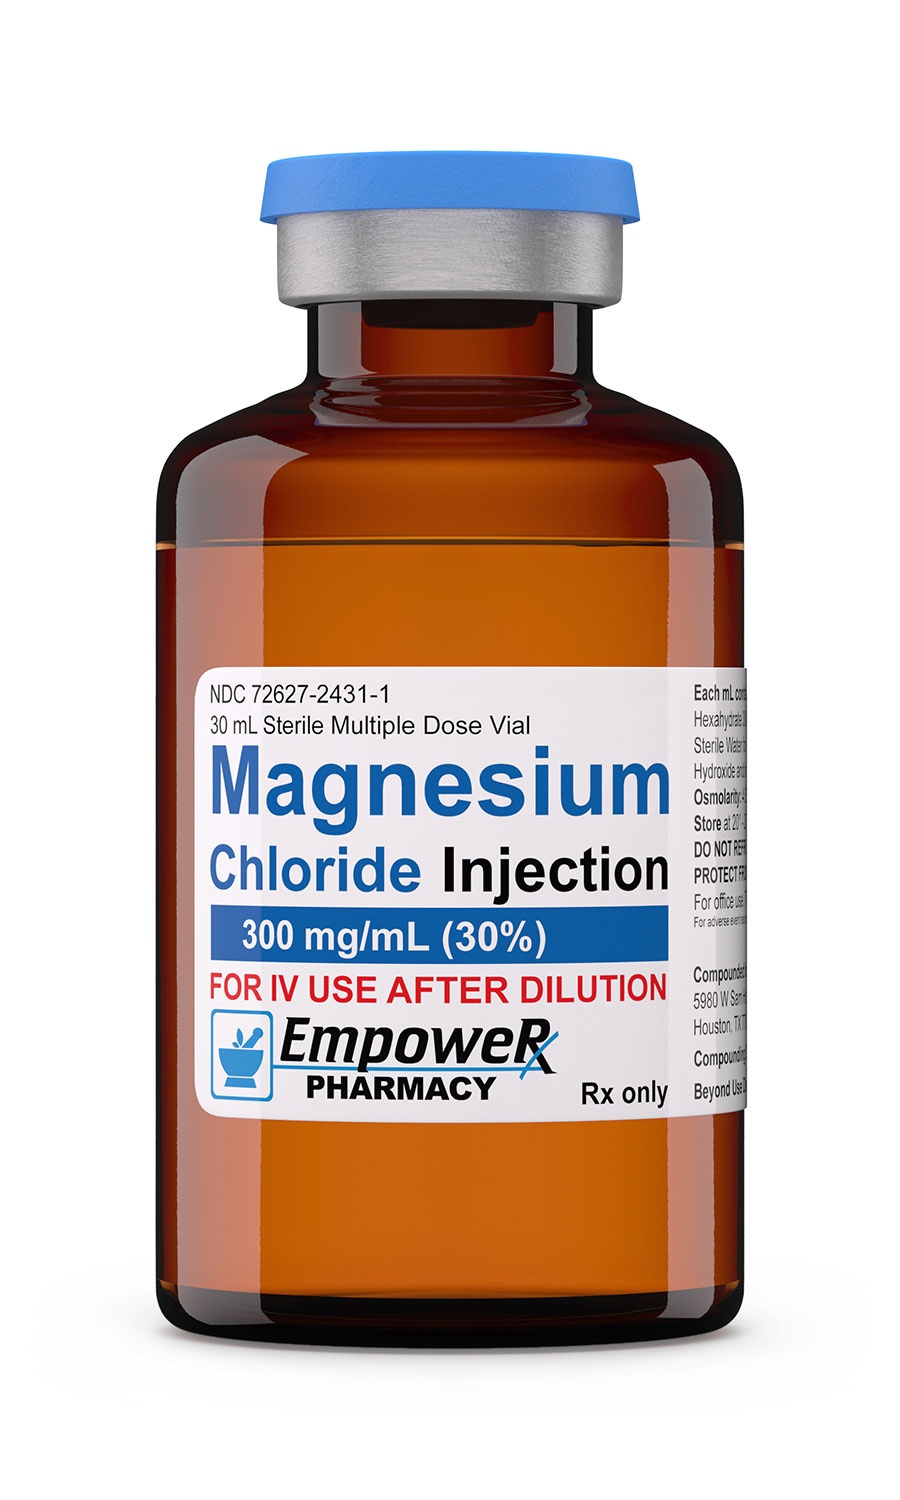 Magnesium-Chloride-Injection